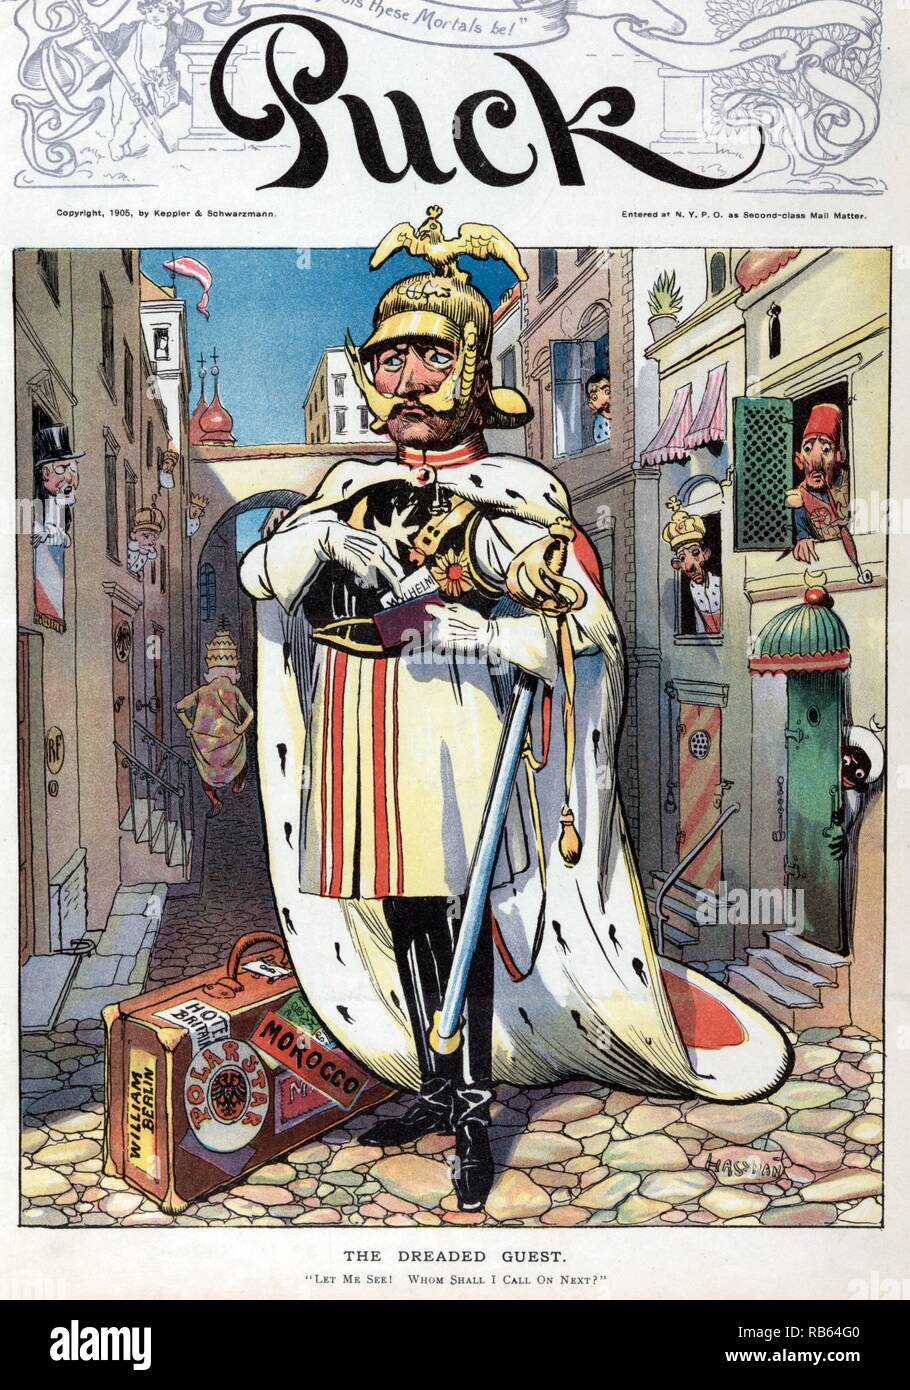 The dreaded guest by Carl Hassmann, 1905. William II, emperor of Germany, standing in the middle of a cobblestone street, in Italy (?) (the pope, wearing the papal crown, is walking down the street), taking a visiting card labeled 'Wilhelm' from a pouch in his left hand. The French flag is hanging above a door labeled 'RF', on the left. Austria appears to be the next door on the left, and other rulers lean out windows on both sides of the street. At William's feet is a suitcase with labels 'William Berlin, Hotel Britain, Polar Star, [and] Morocco'. - Stock Image